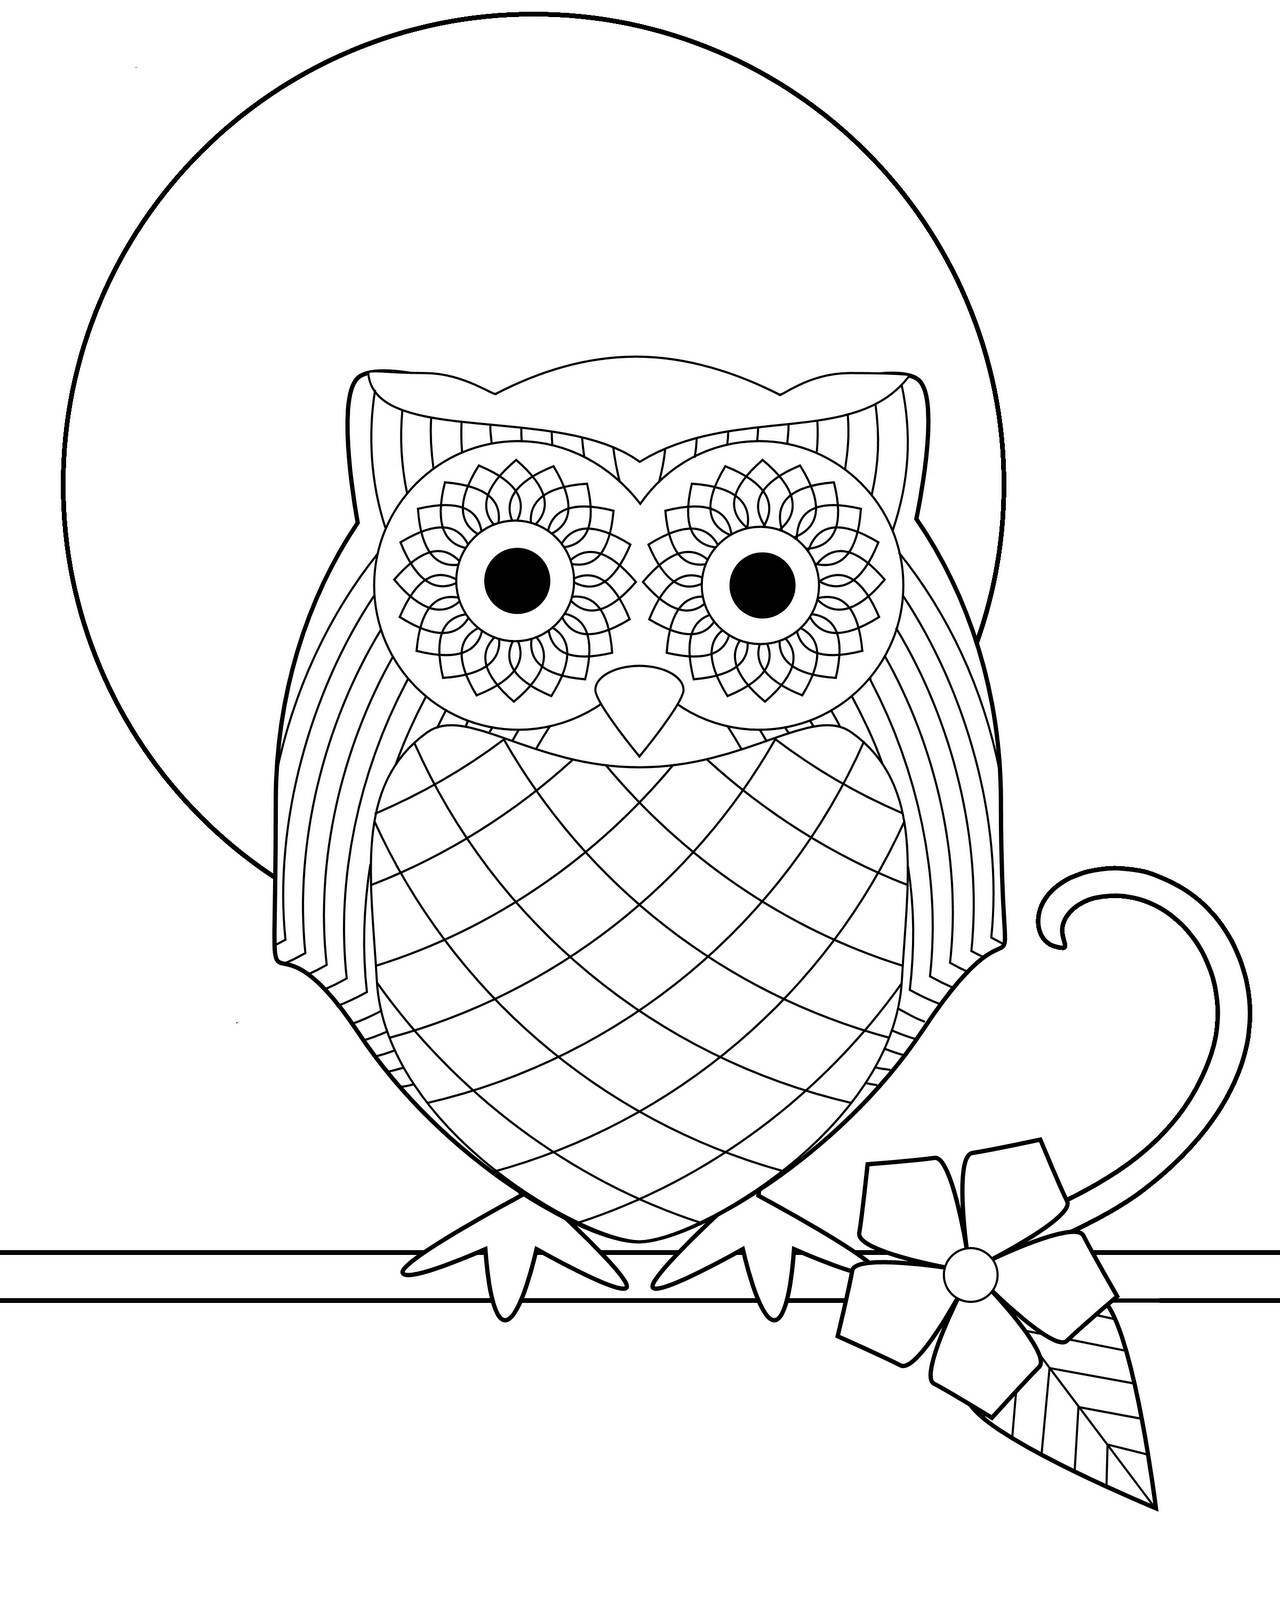 Owl Coloring Pages For Kids Printable  Free Printable Owl Coloring Pages For Kids